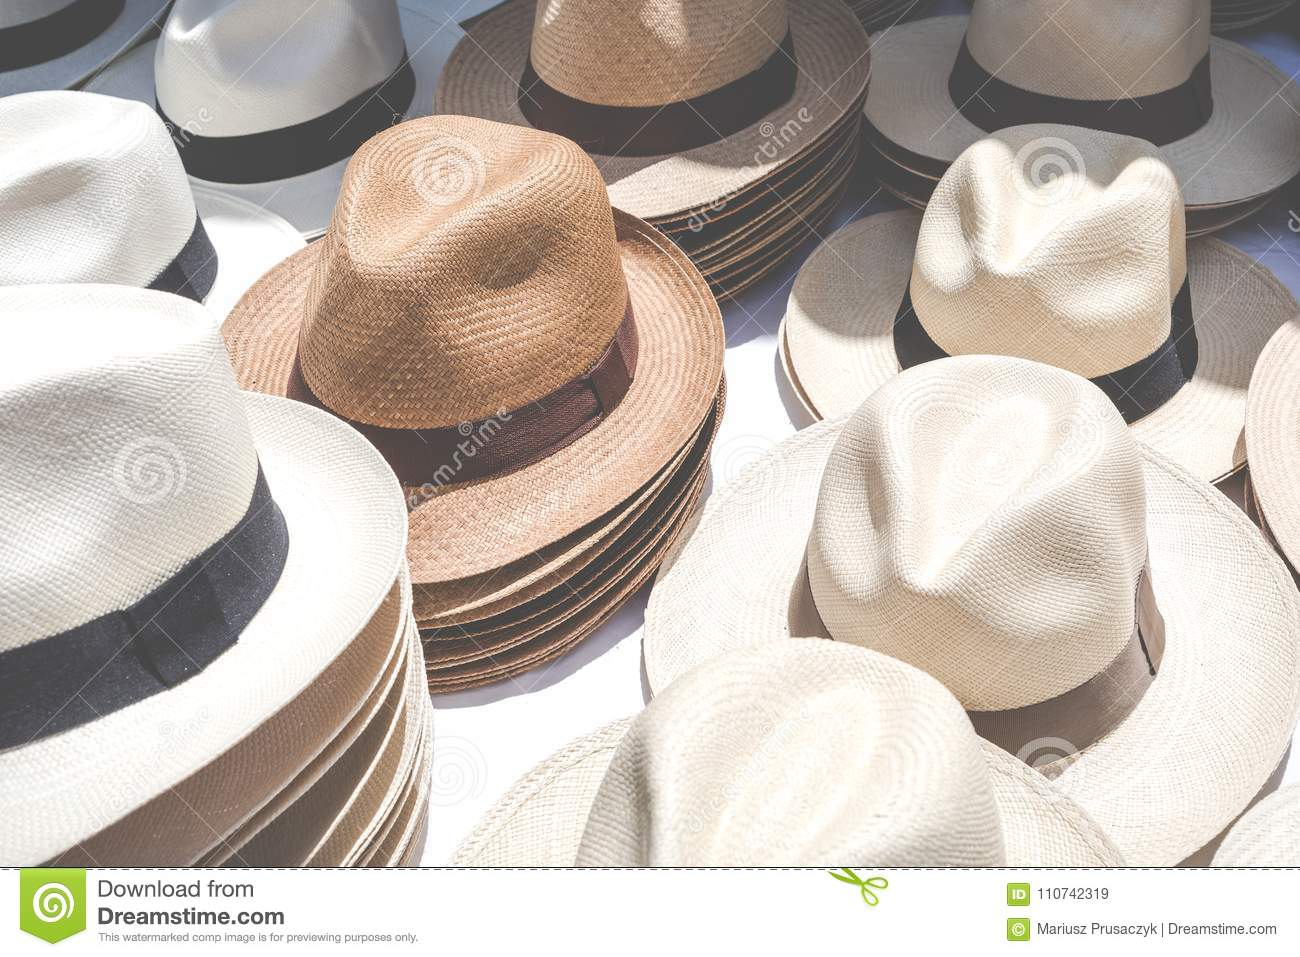 5b3b6208844c0 Handmade Panama Hats At The Traditional Outdoor Market. Popular ...